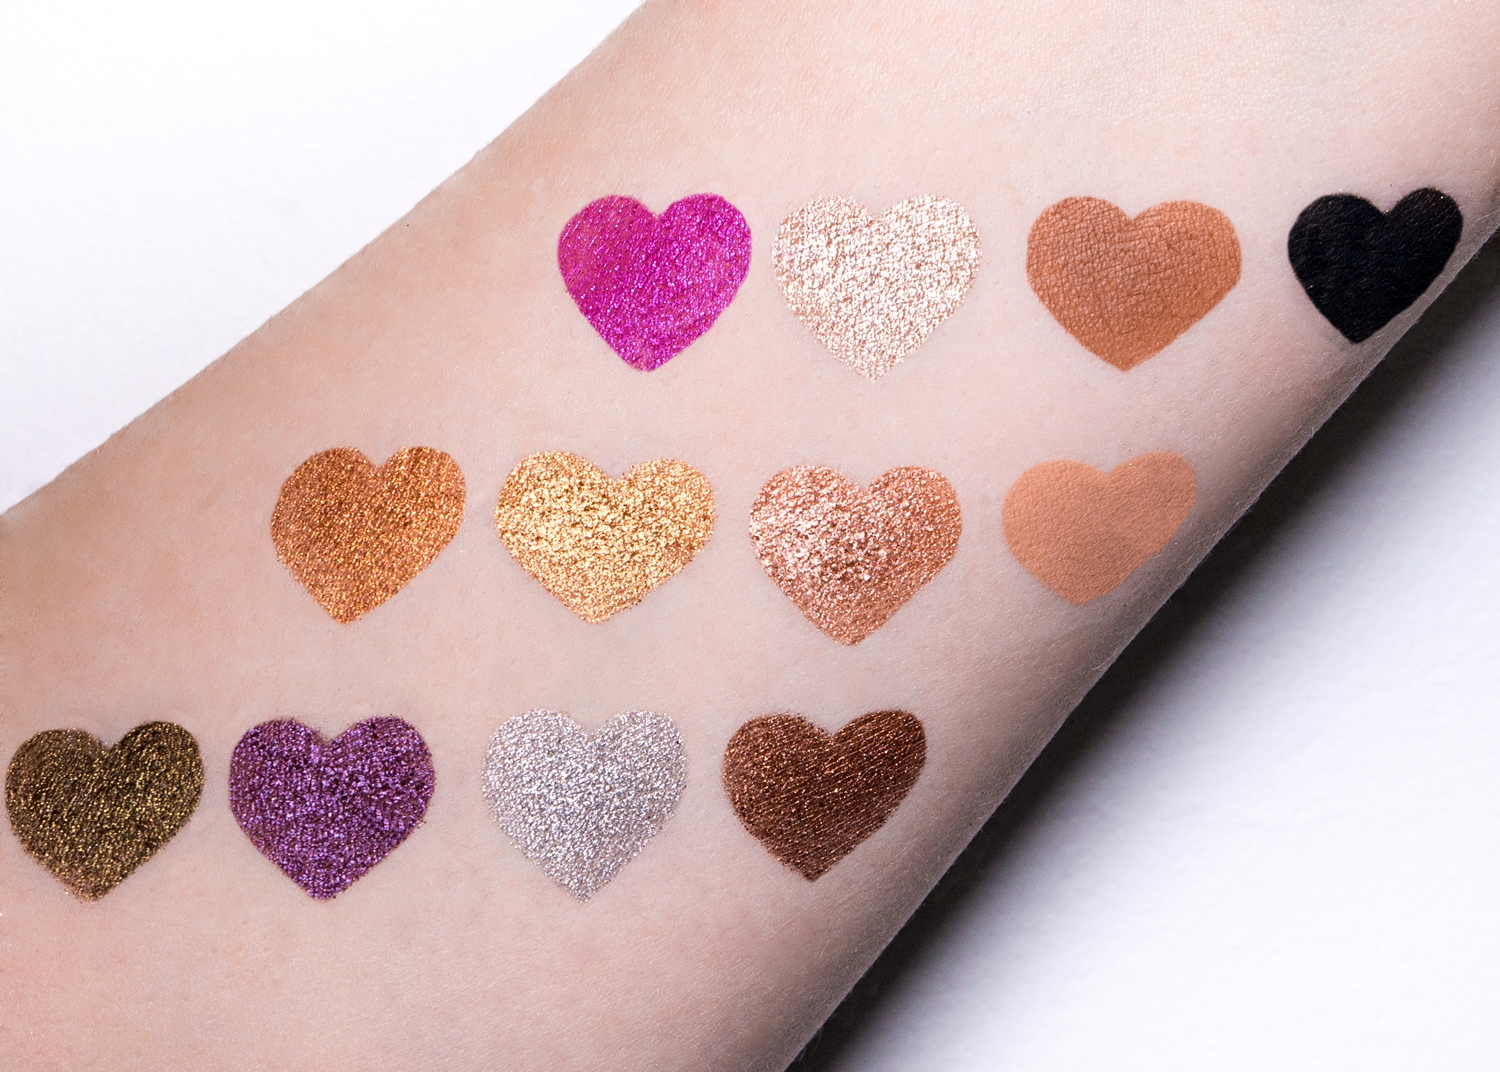 Too Faced Chocolate Gold swatch